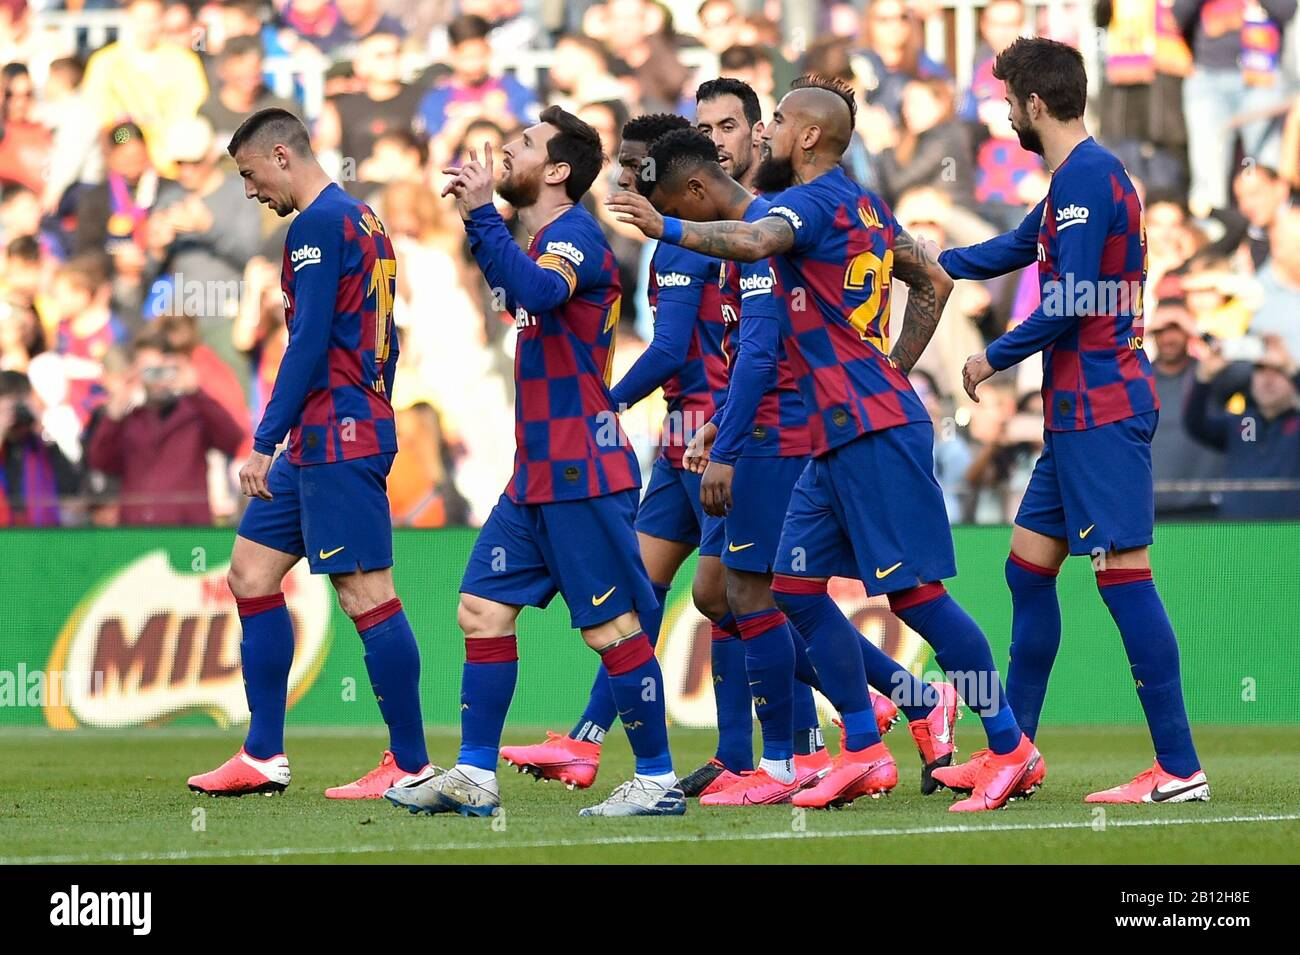 barcelona spain 22nd feb 2020 leo messi of fc barcelona celebrate his first goal during the https www alamy com barcelona spain 22nd feb 2020 leo messi of fc barcelona celebrate his first goal during the liga match between fc barcelona and sd eibar at camp nou on february 15 2020 in barcelona spain photo by daxespa images credit european sports photographic agencyalamy live news image344879486 html